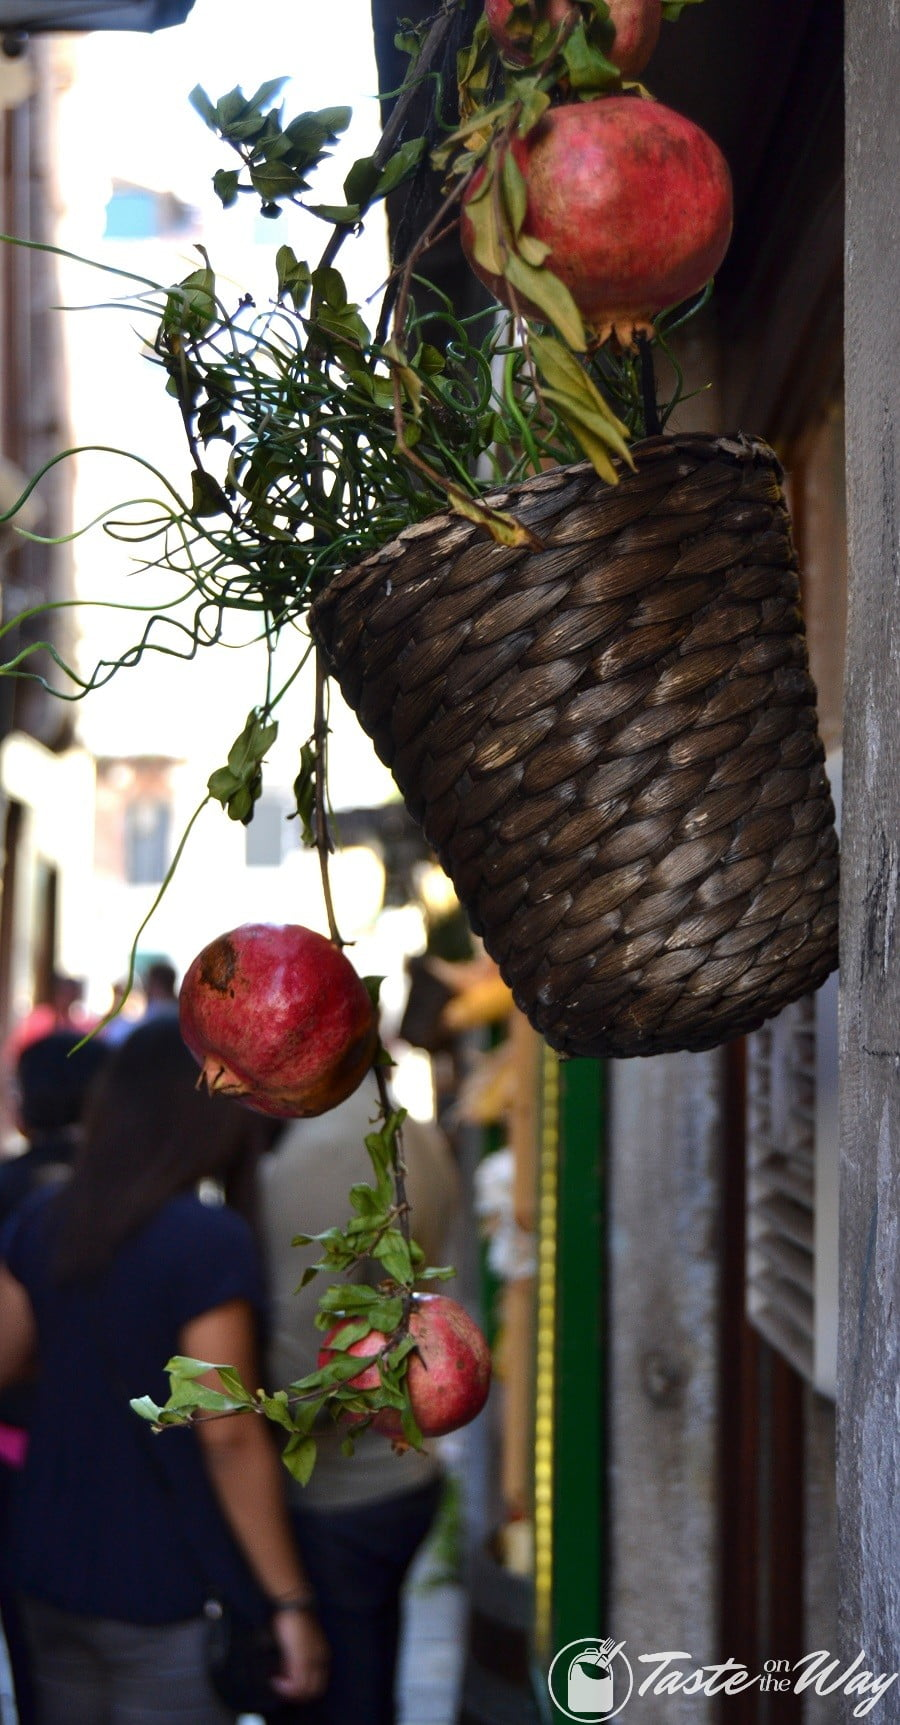 One of the top 10 fun #ThingsToDo in #Venice, #Italy is to observe the little details. Check out for more! #travel #photography @tasteontheway